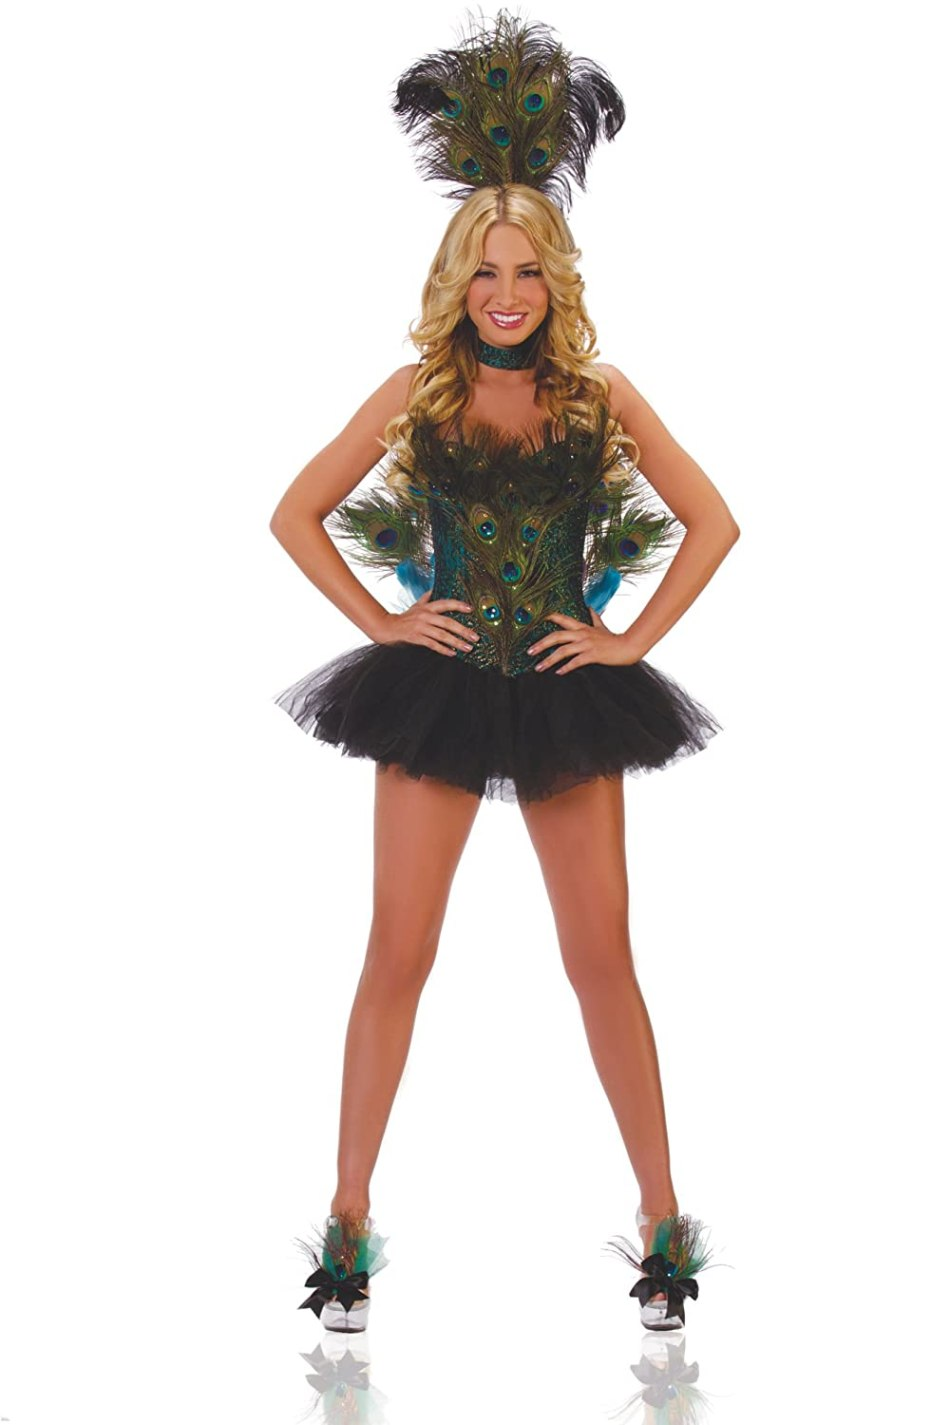 peacock costumes for women - Starline Women's Sexy 5 Piece Deluxe Peacock Costume